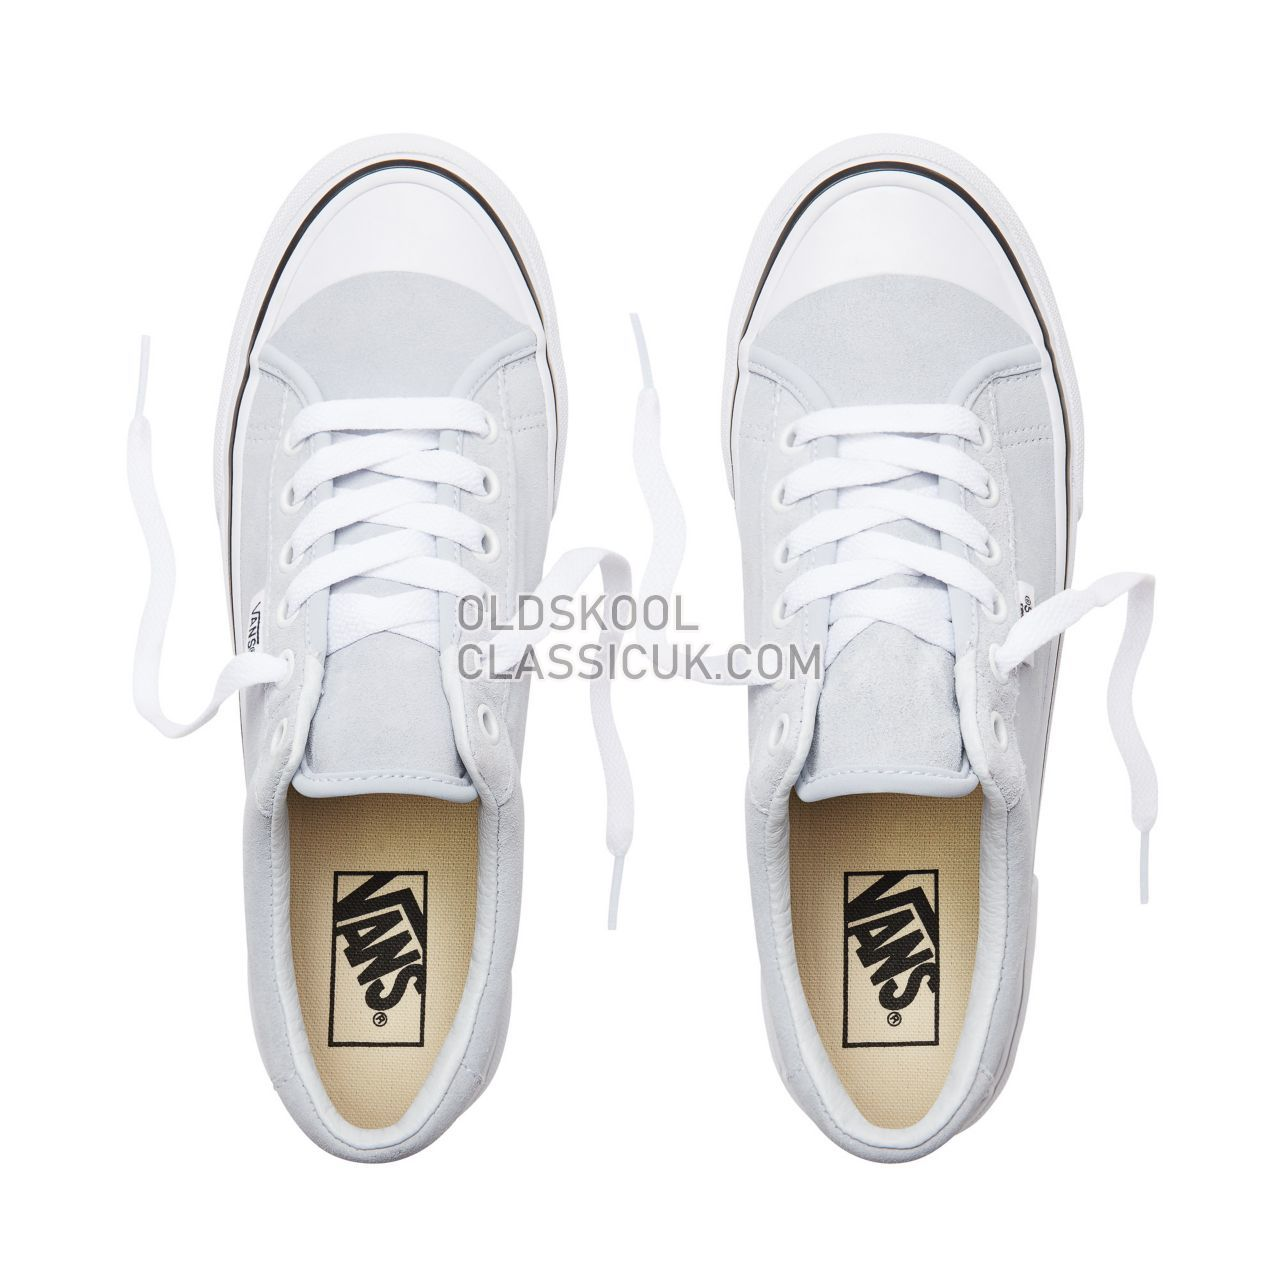 Vans Suede Style 29 Sneakers Womens (Suede) Gray Dawn/True White VN0A3MVHUR7 Shoes